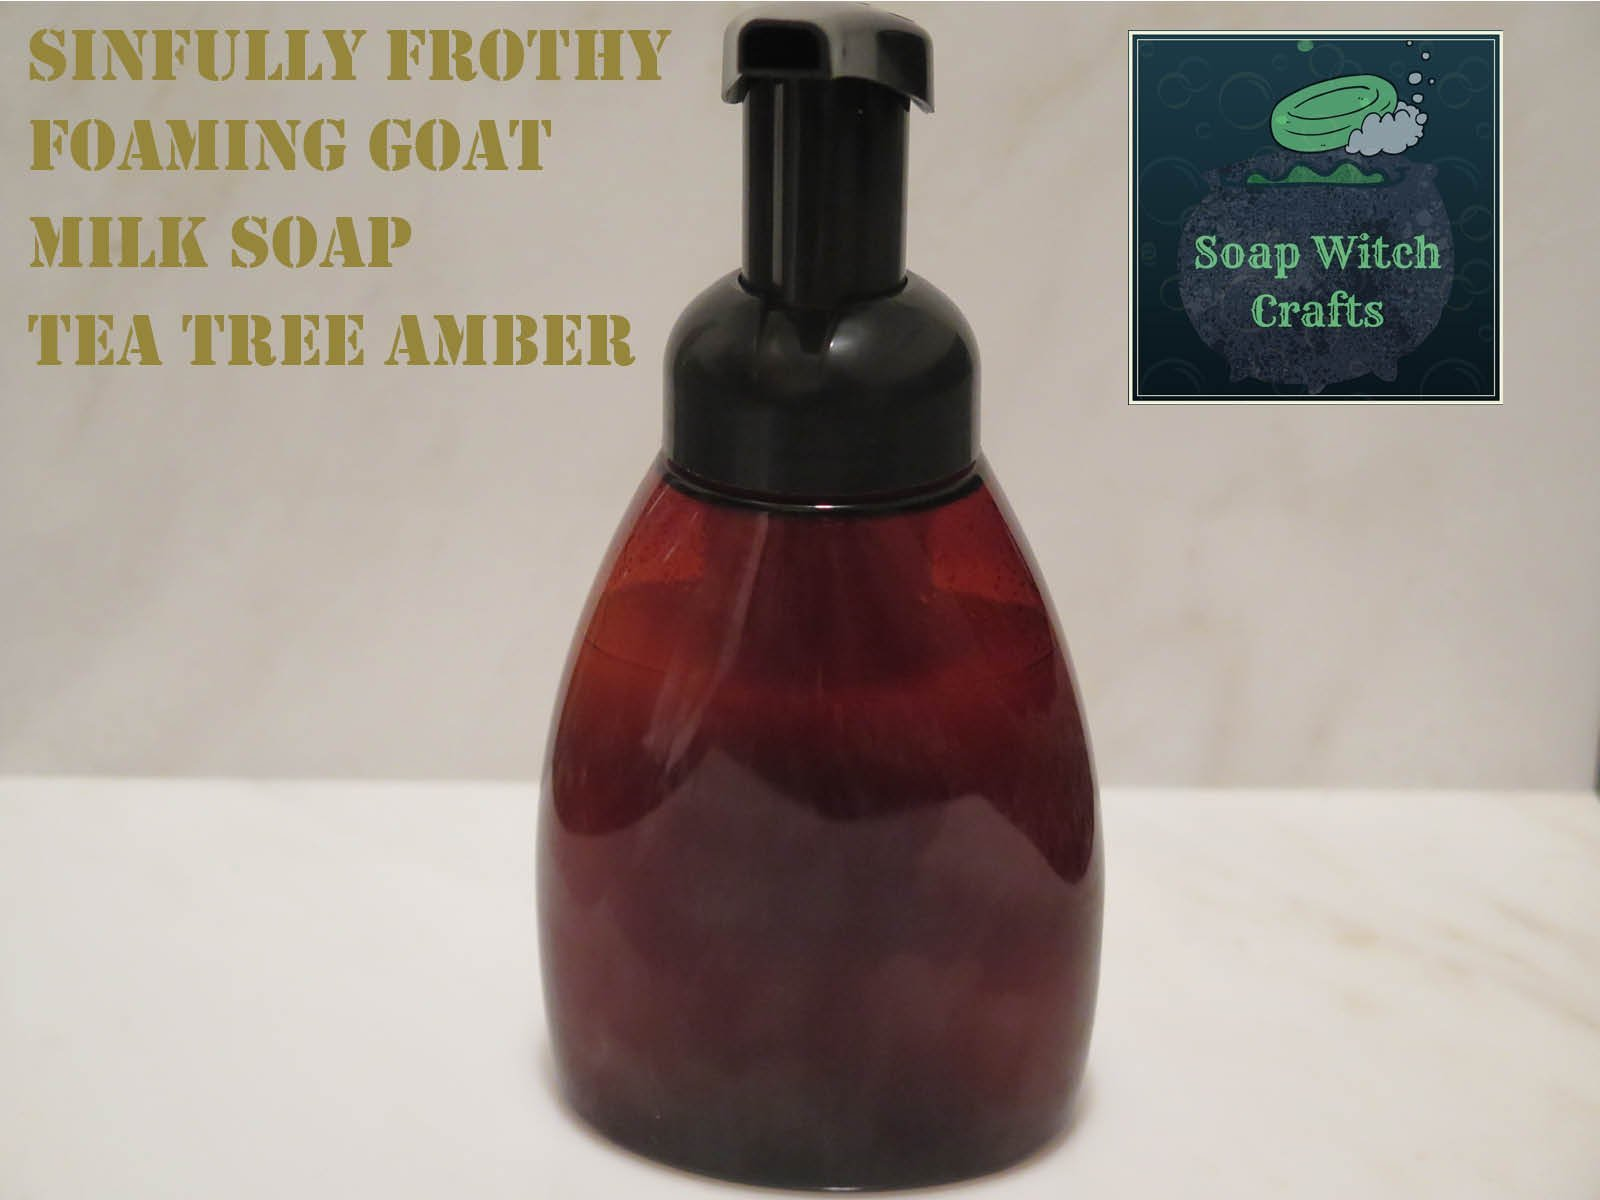 Sinfully Frothy Foaming Goat Milk Soap - Tea Tree Amber Scented